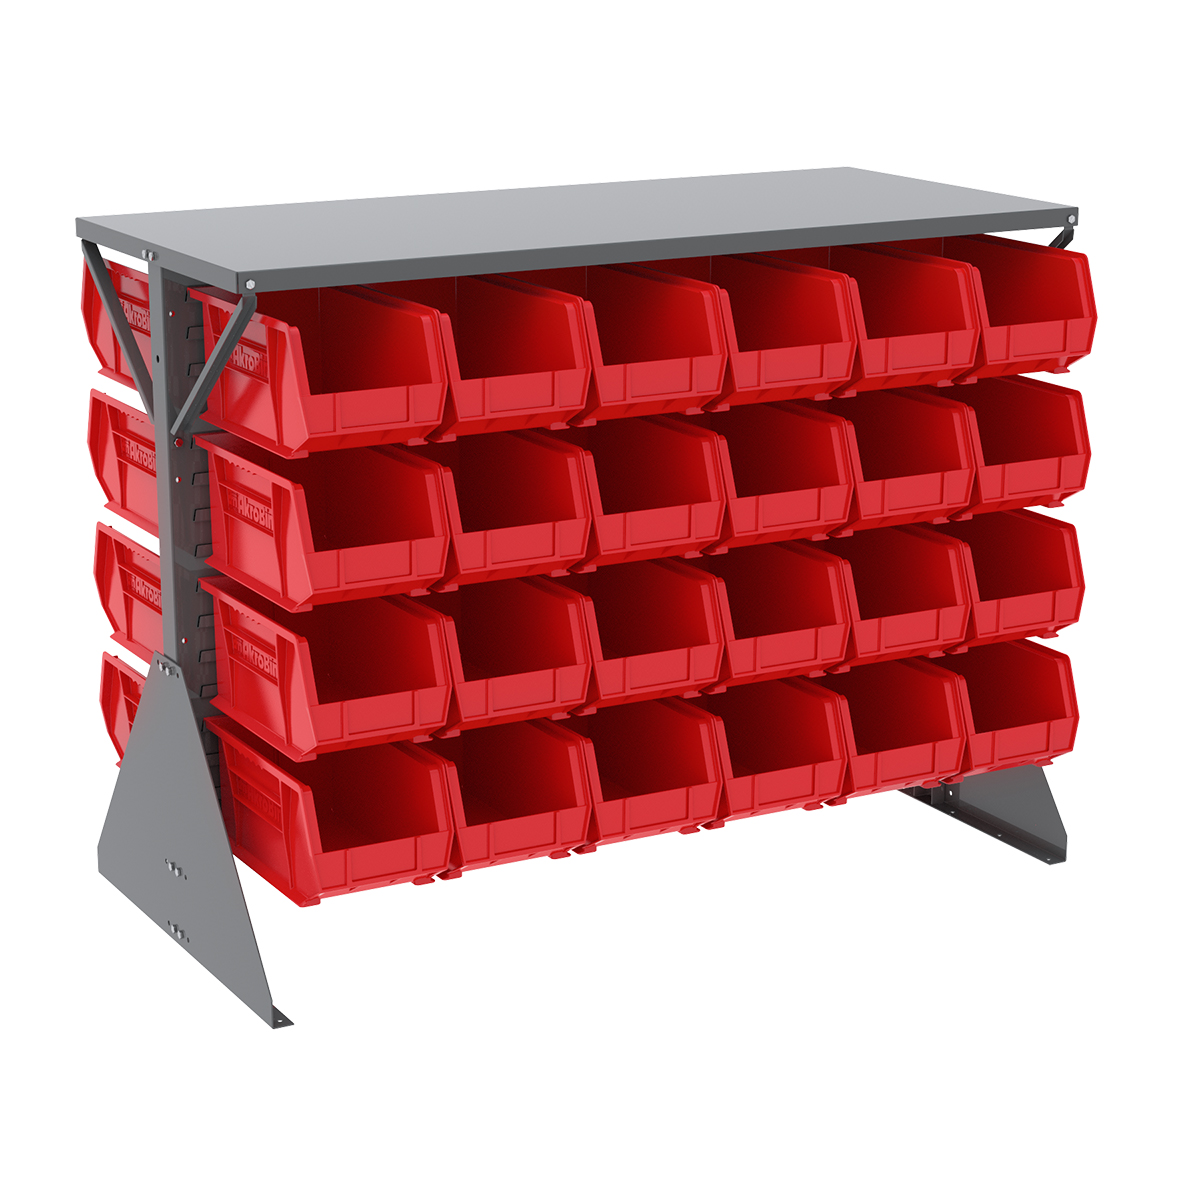 Item DISCONTINUED by Manufacturer.  Low Profile Floor Rack, 2-Sided, Shelf w/ 48 AkroBins, Gray/Red (30606GY240R).  This item sold in carton quantities of 1.